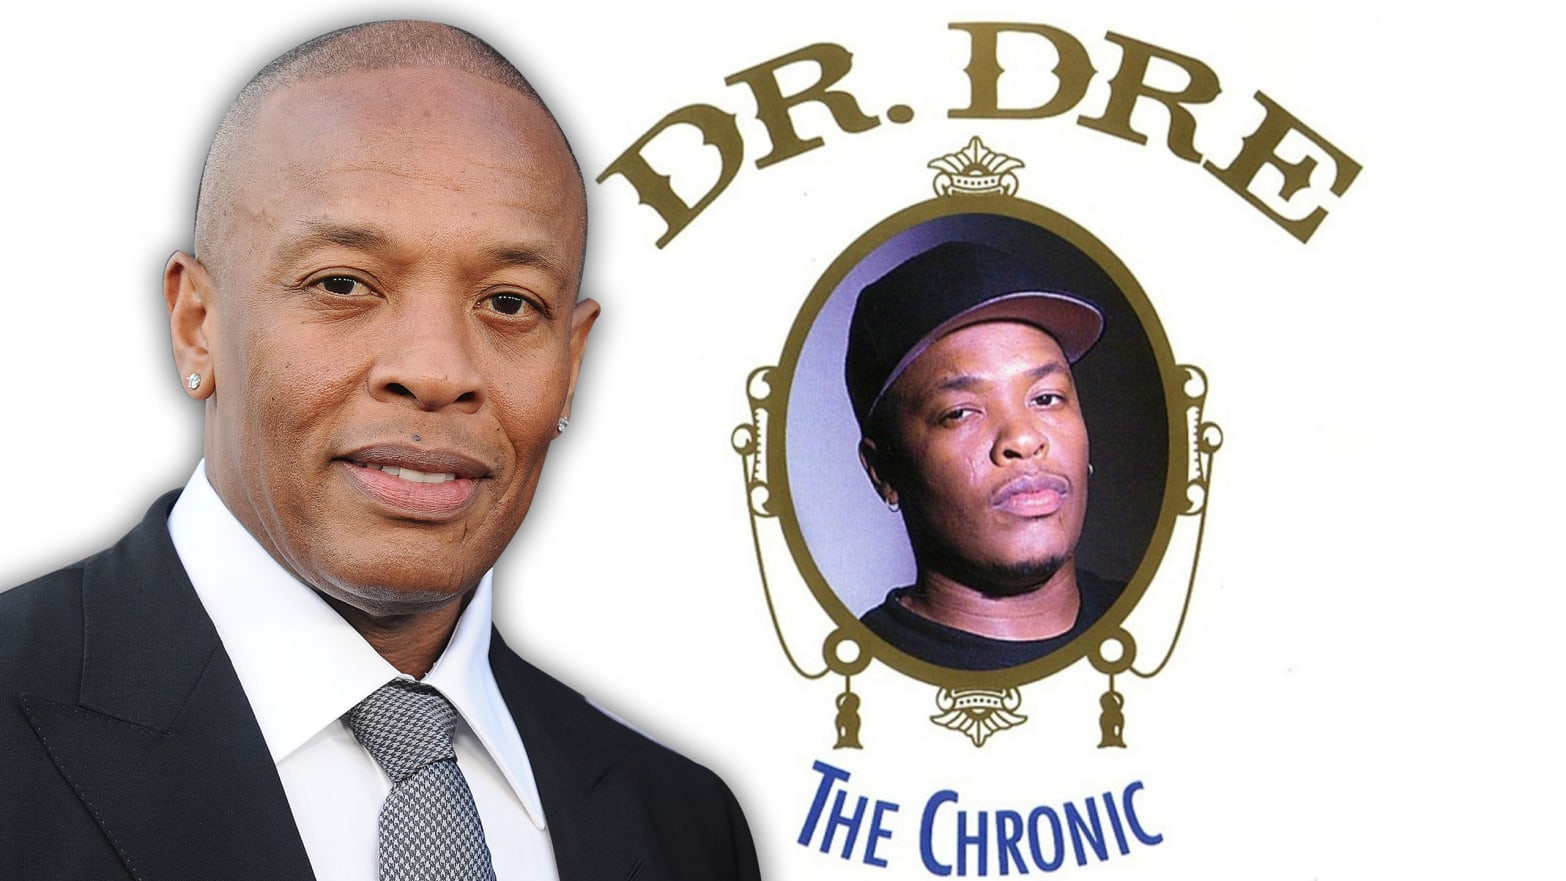 Dr  Dre's 'The Chronic' at 25: A Misogynistic Hip-Hop Masterpiece